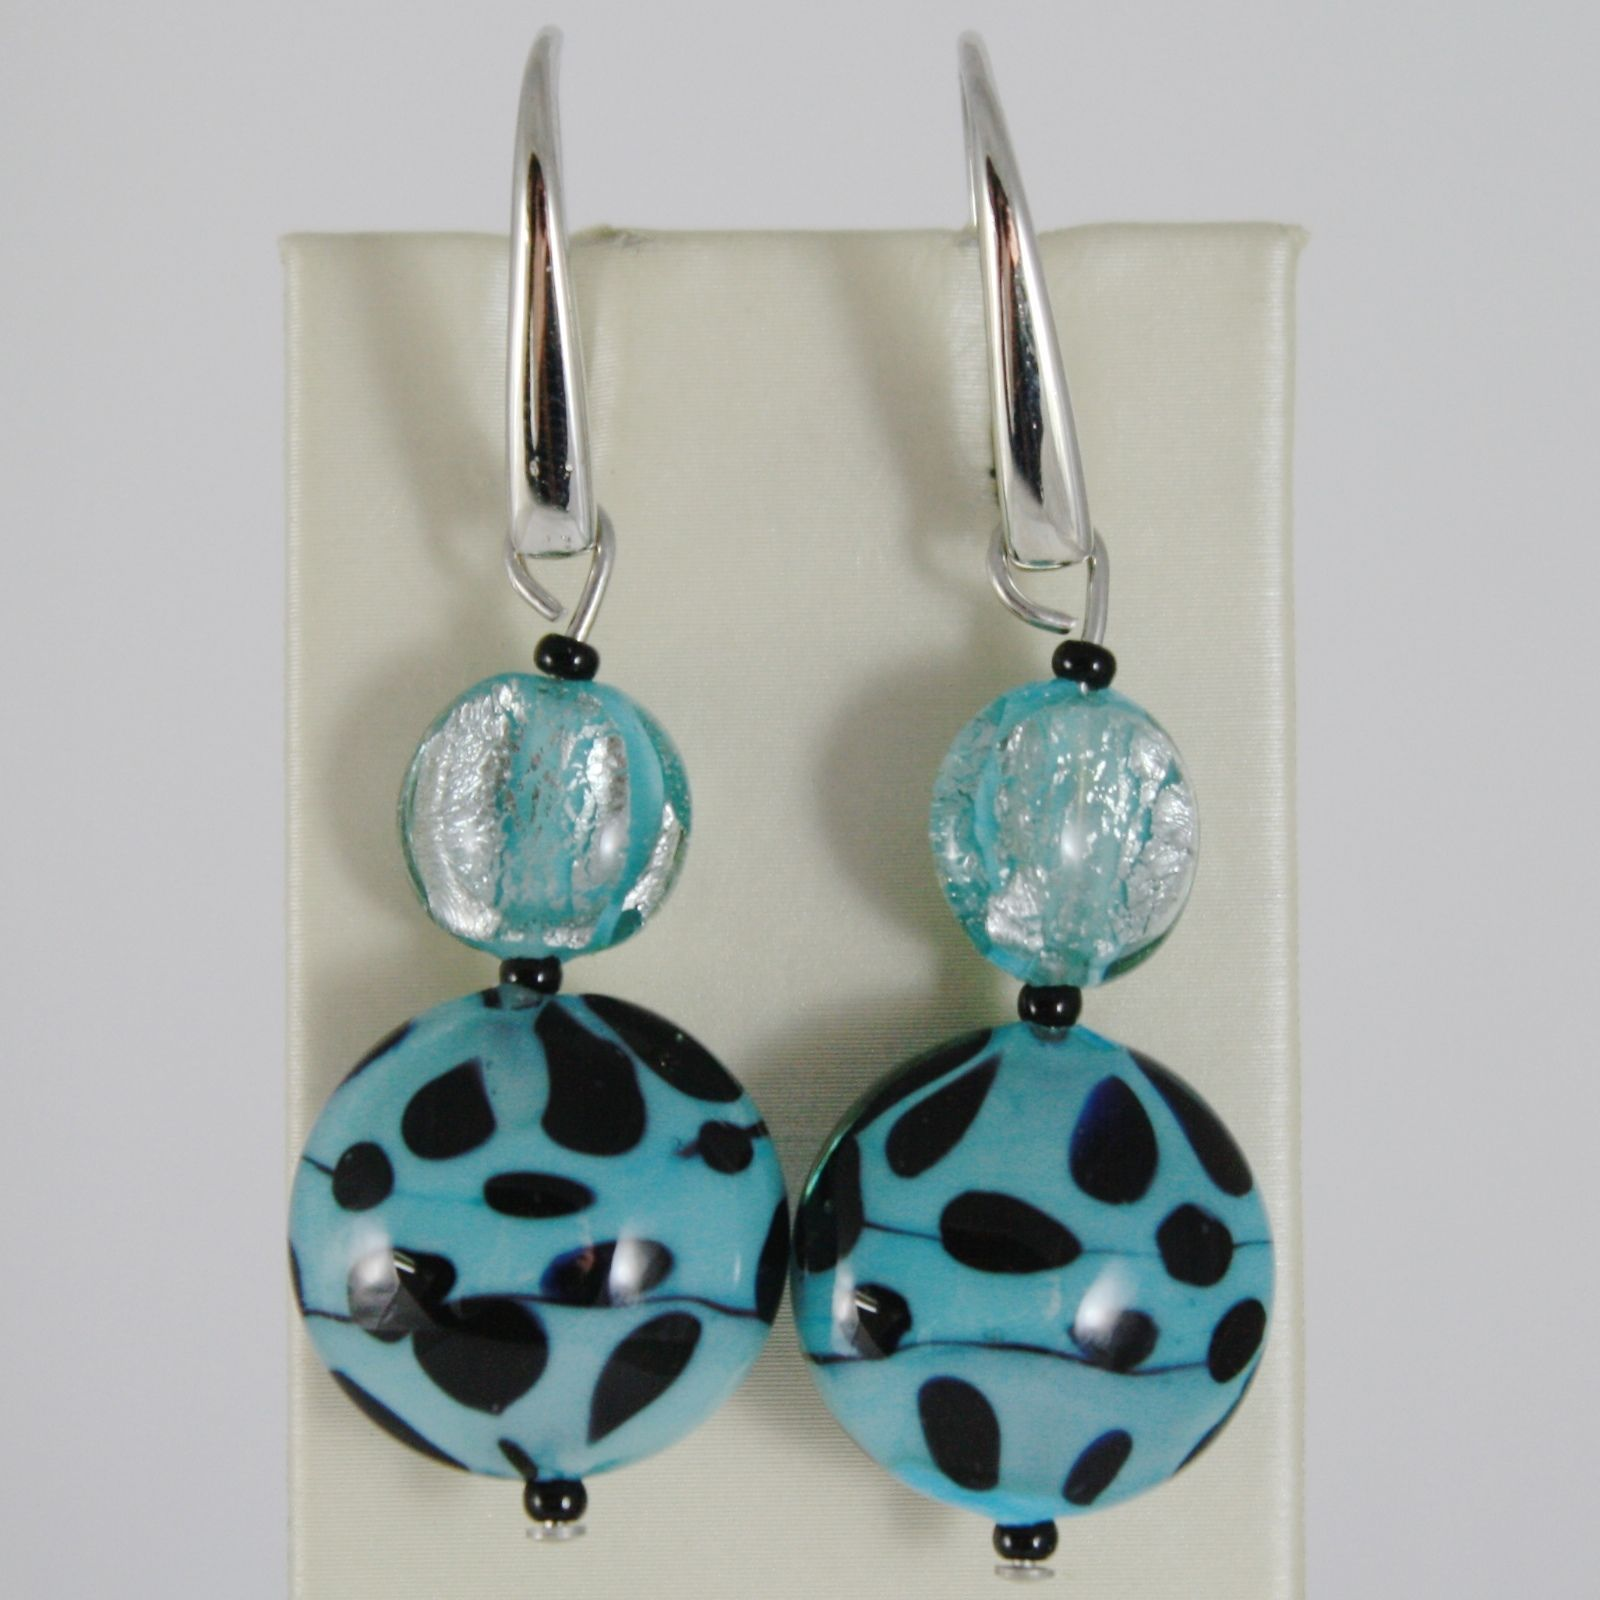 ANTICA MURRINA VENEZIA DISCS PENDANT 5 CM EARRINGS TURQUOISE & BLACK POIS